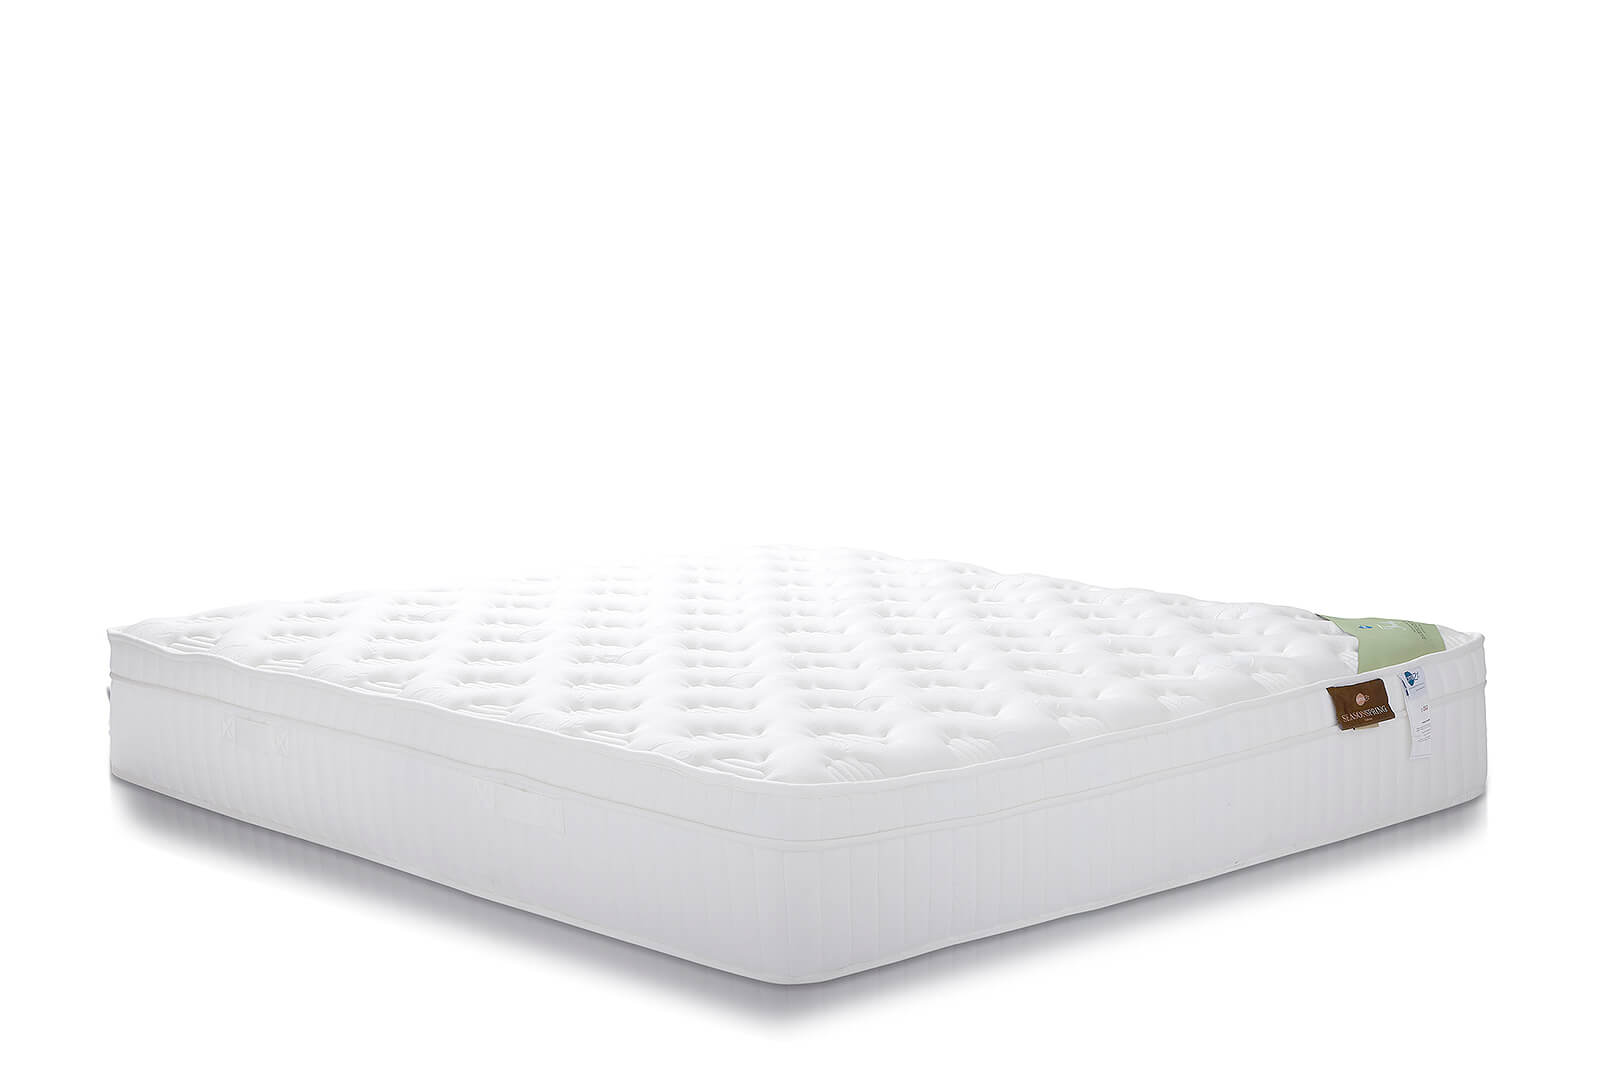 Omazz Mattress Fairly